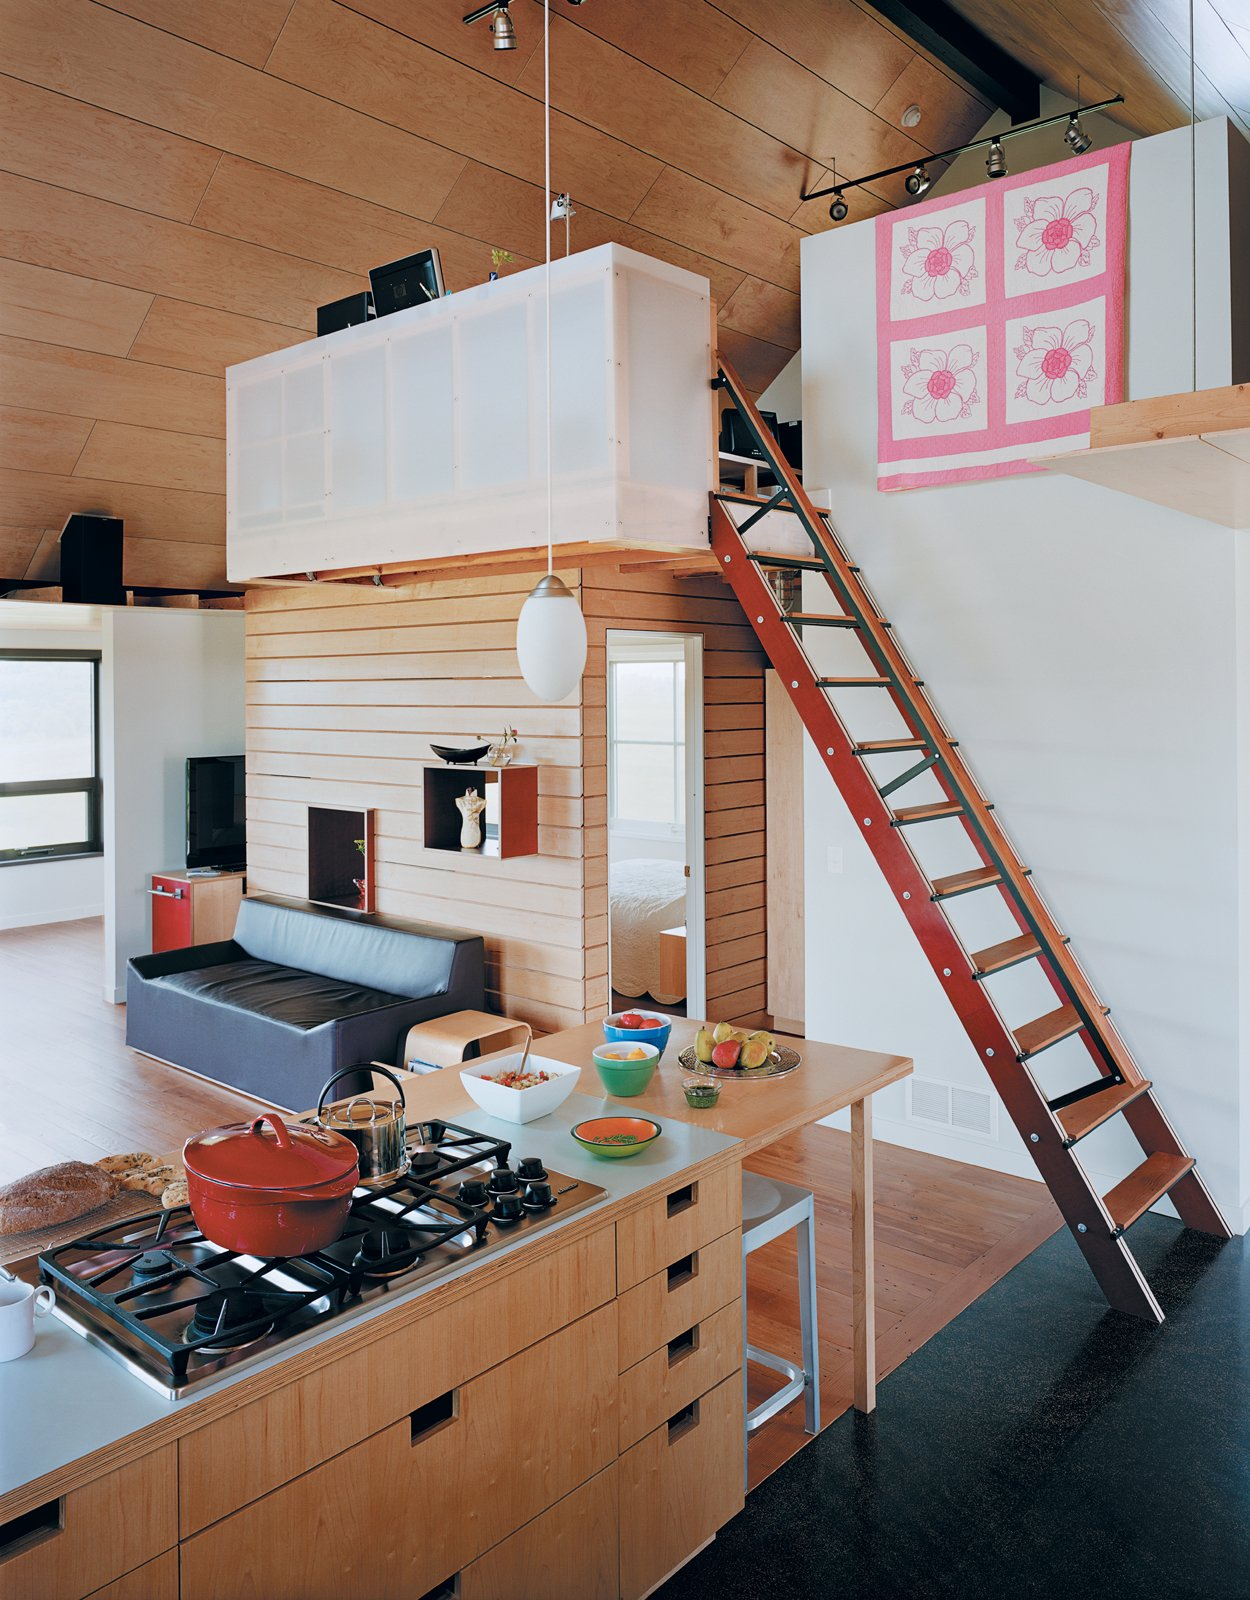 Kitchen, Wood Counter, and Cooktops The kitchen cabinets with cutouts for handles were designed by a local woodworker. The stairs lead to a loft office where Joanna works, perched beside a quilt made by her great-grandmother.  Blu Dot Spotted from Farm Fresh